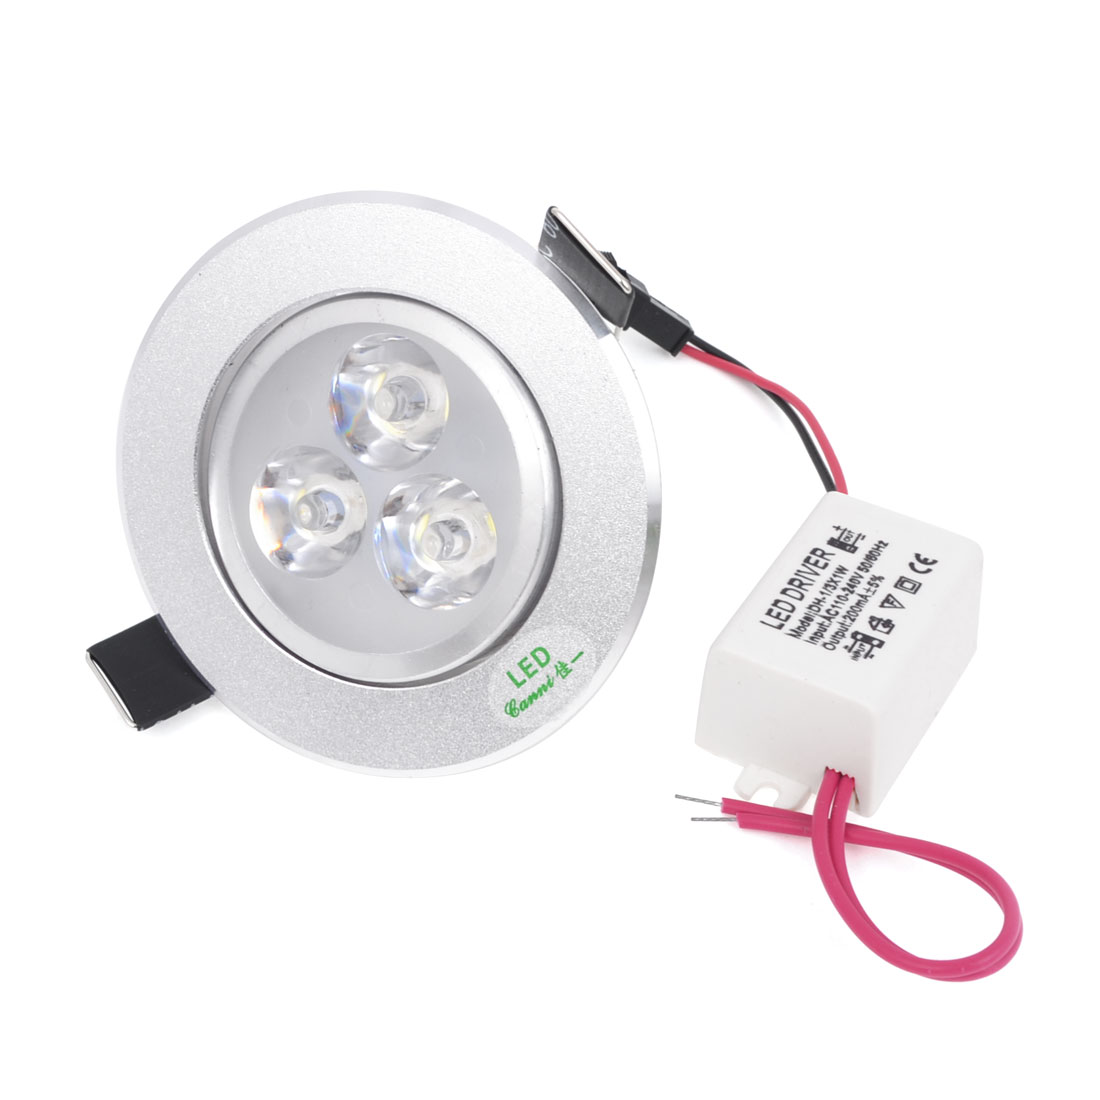 AC 100-240V White 3W 3 LEDs Ceiling Down Light Recessed Lamp w LED Driver